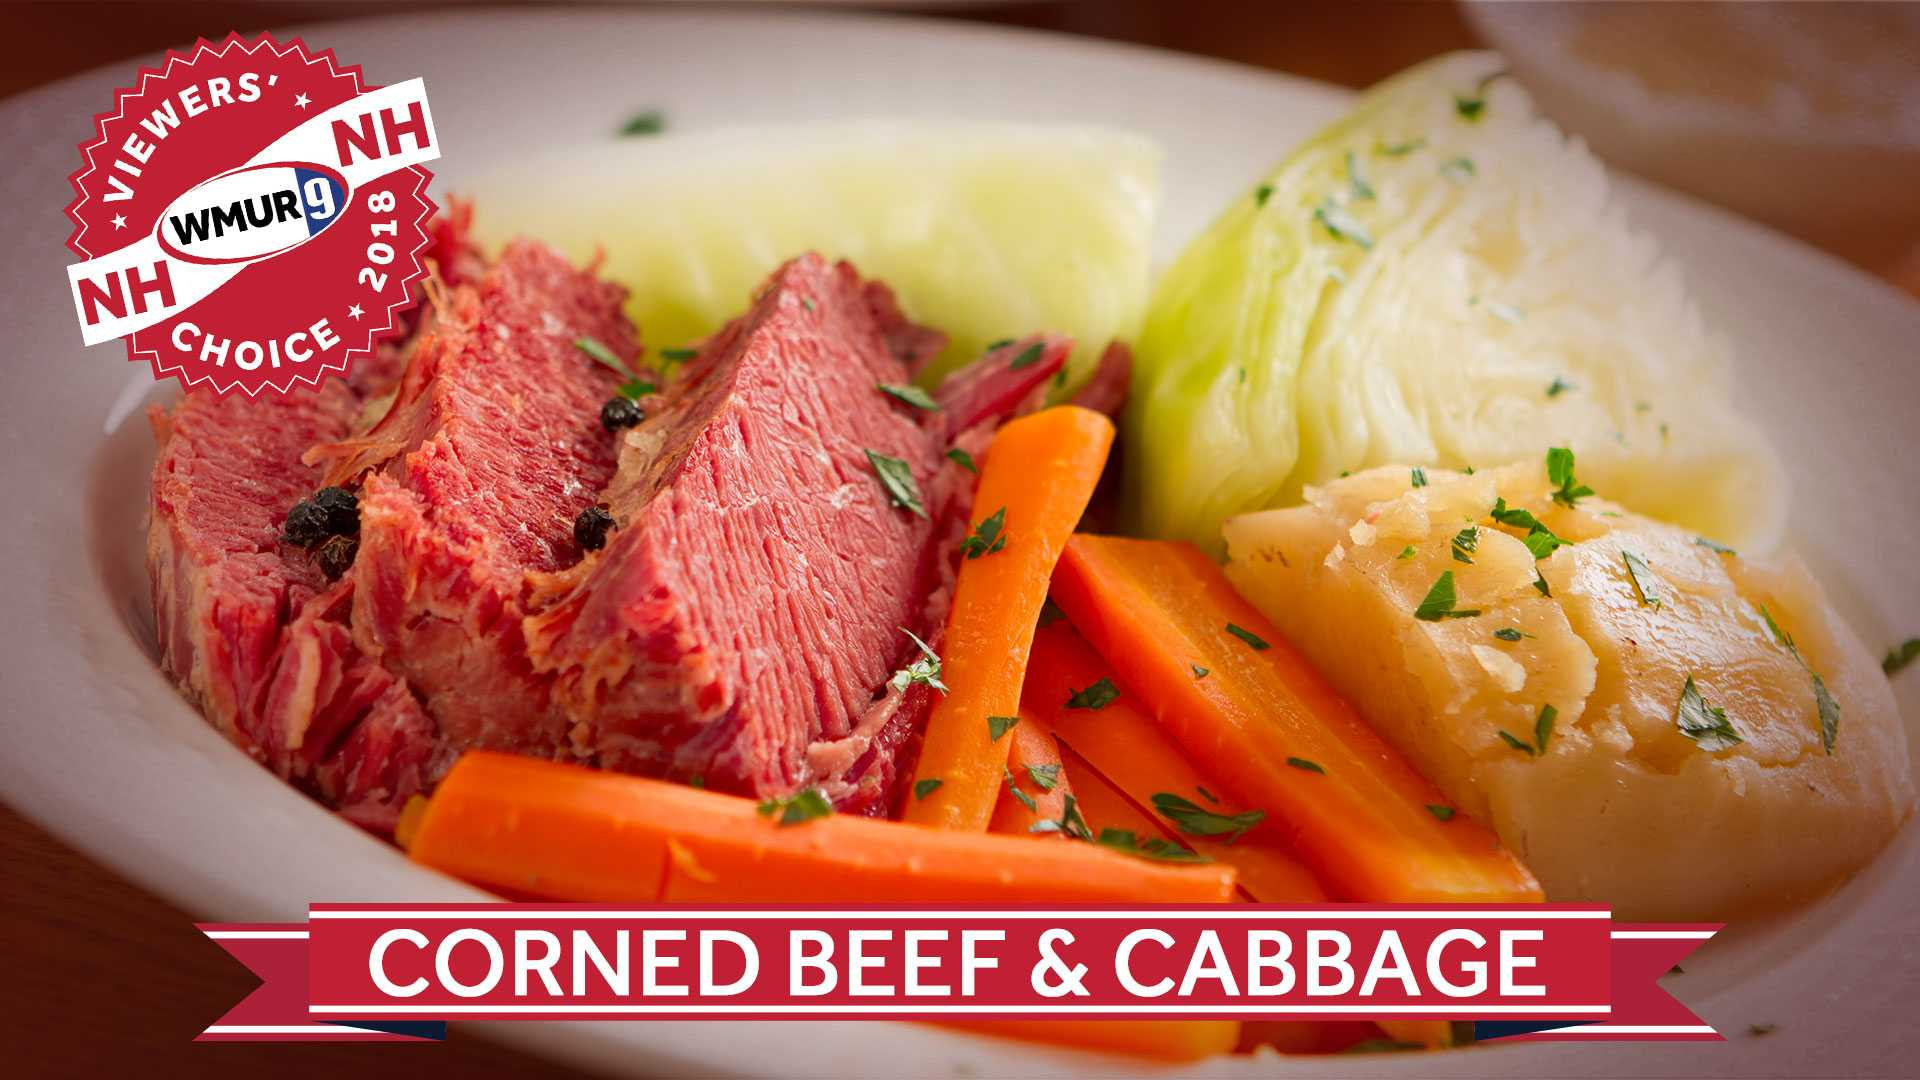 Viewers' Choice Corned Beef and Cabbage